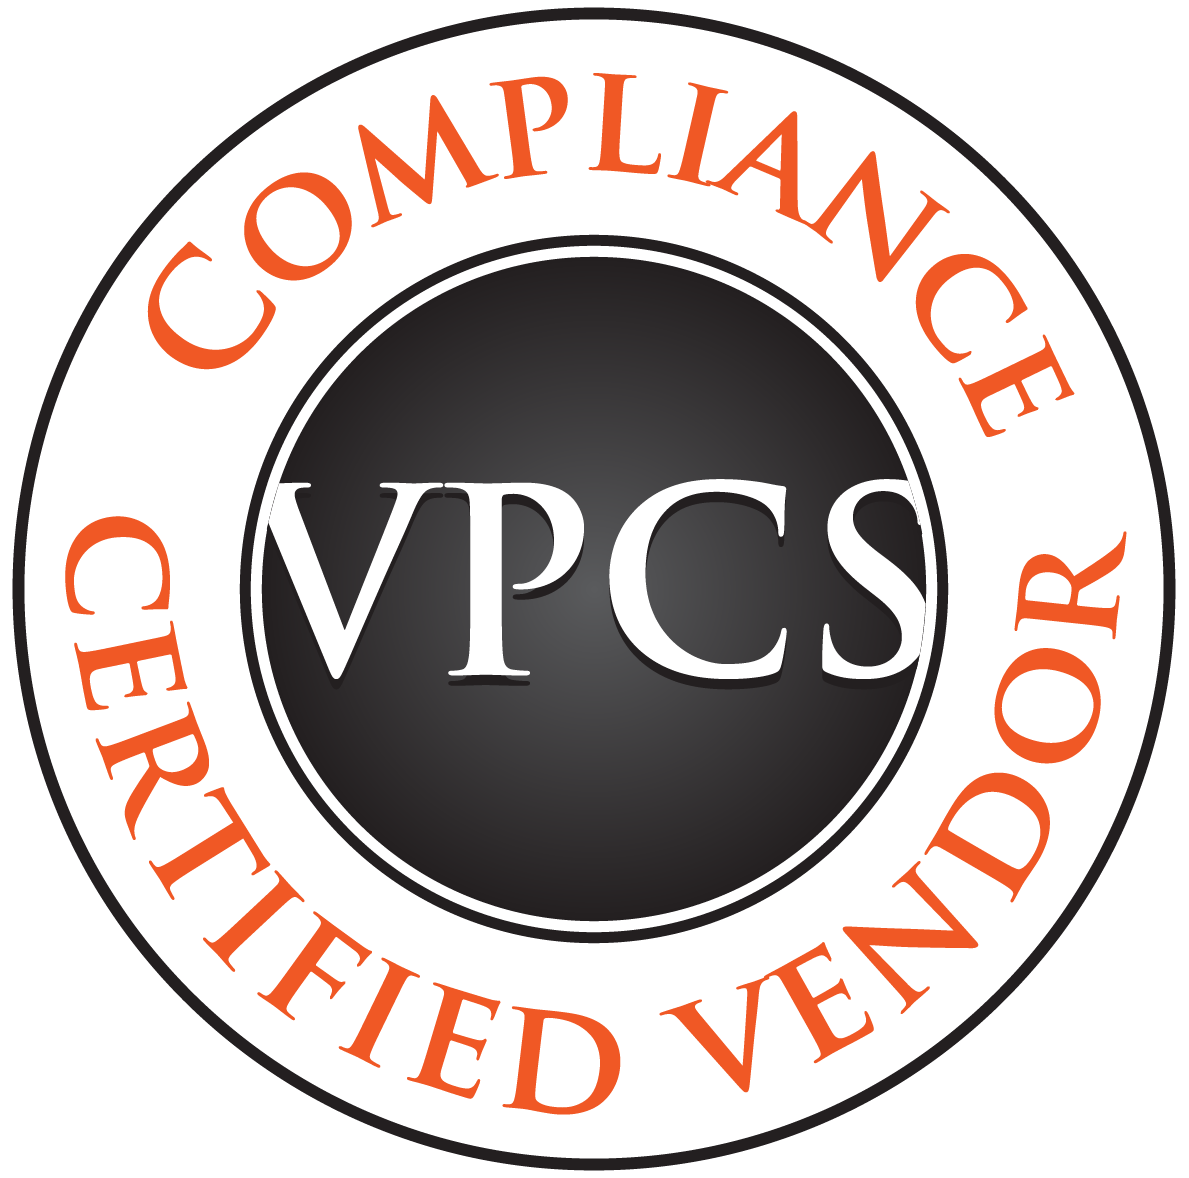 Vpcs Awards Halsted Financial Services Call Center Compliance